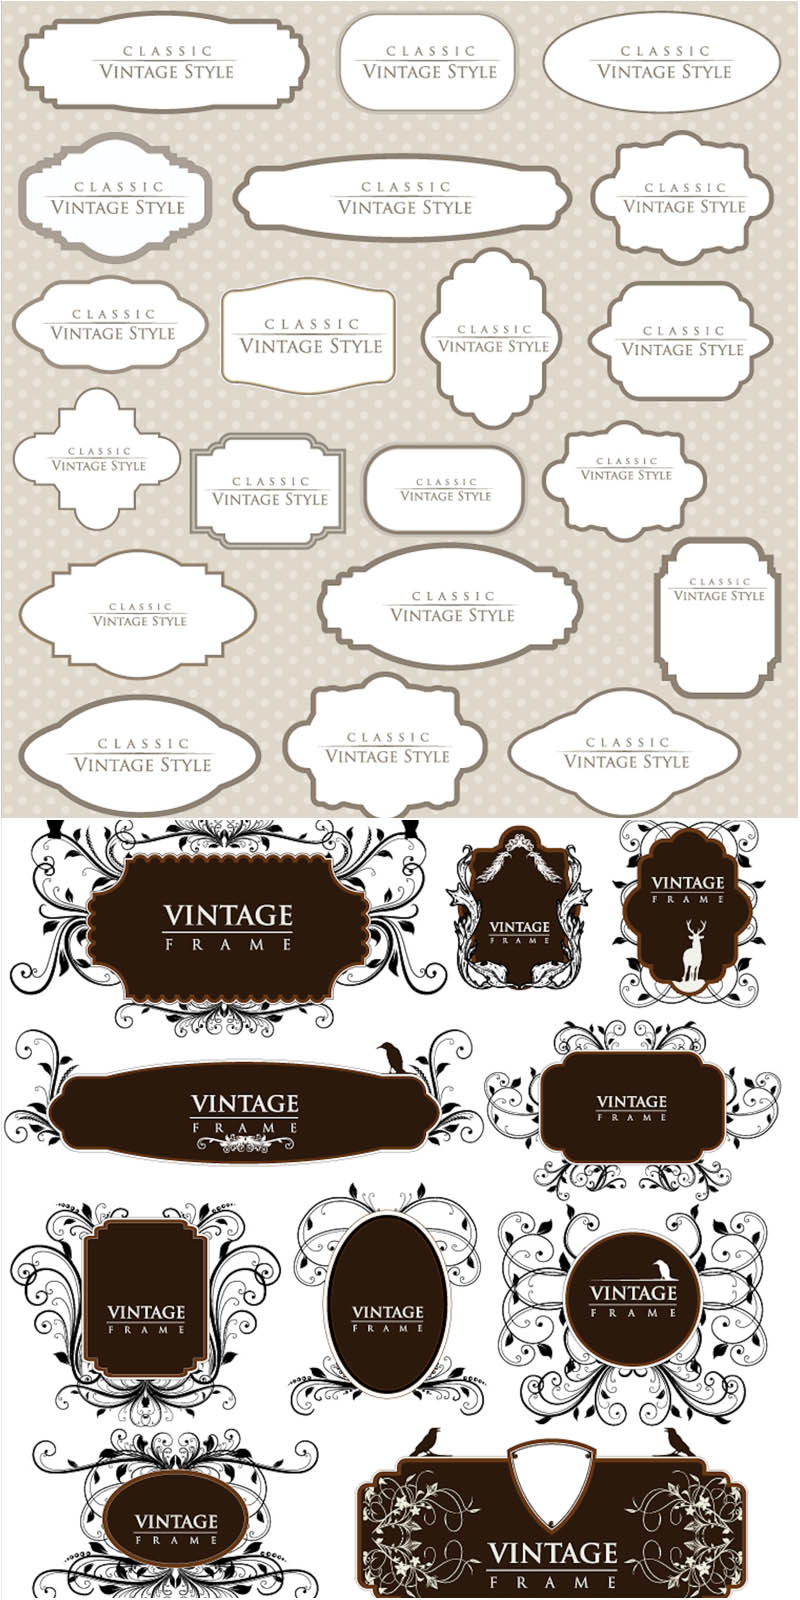 Classic clipart vintage tag #6